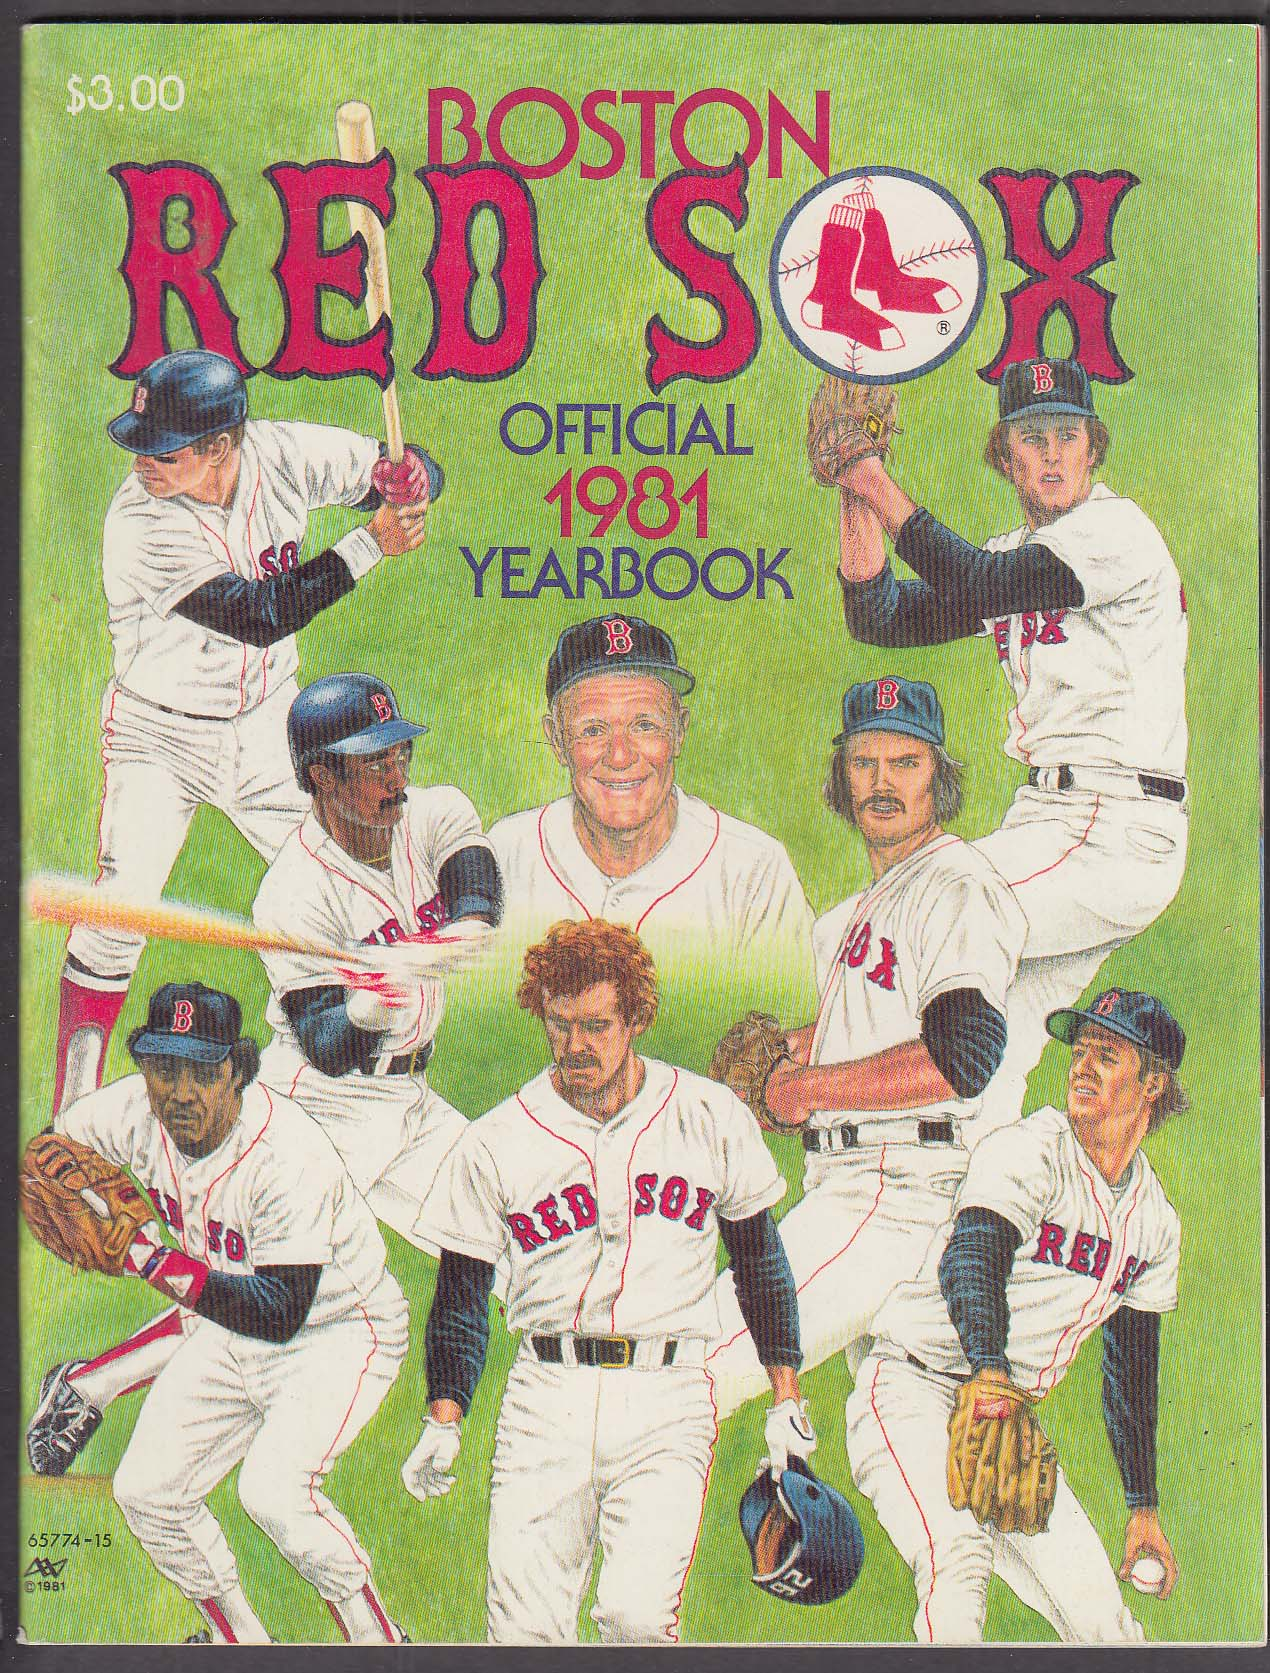 1981 Boston Red Sox Yearbook 1st edition